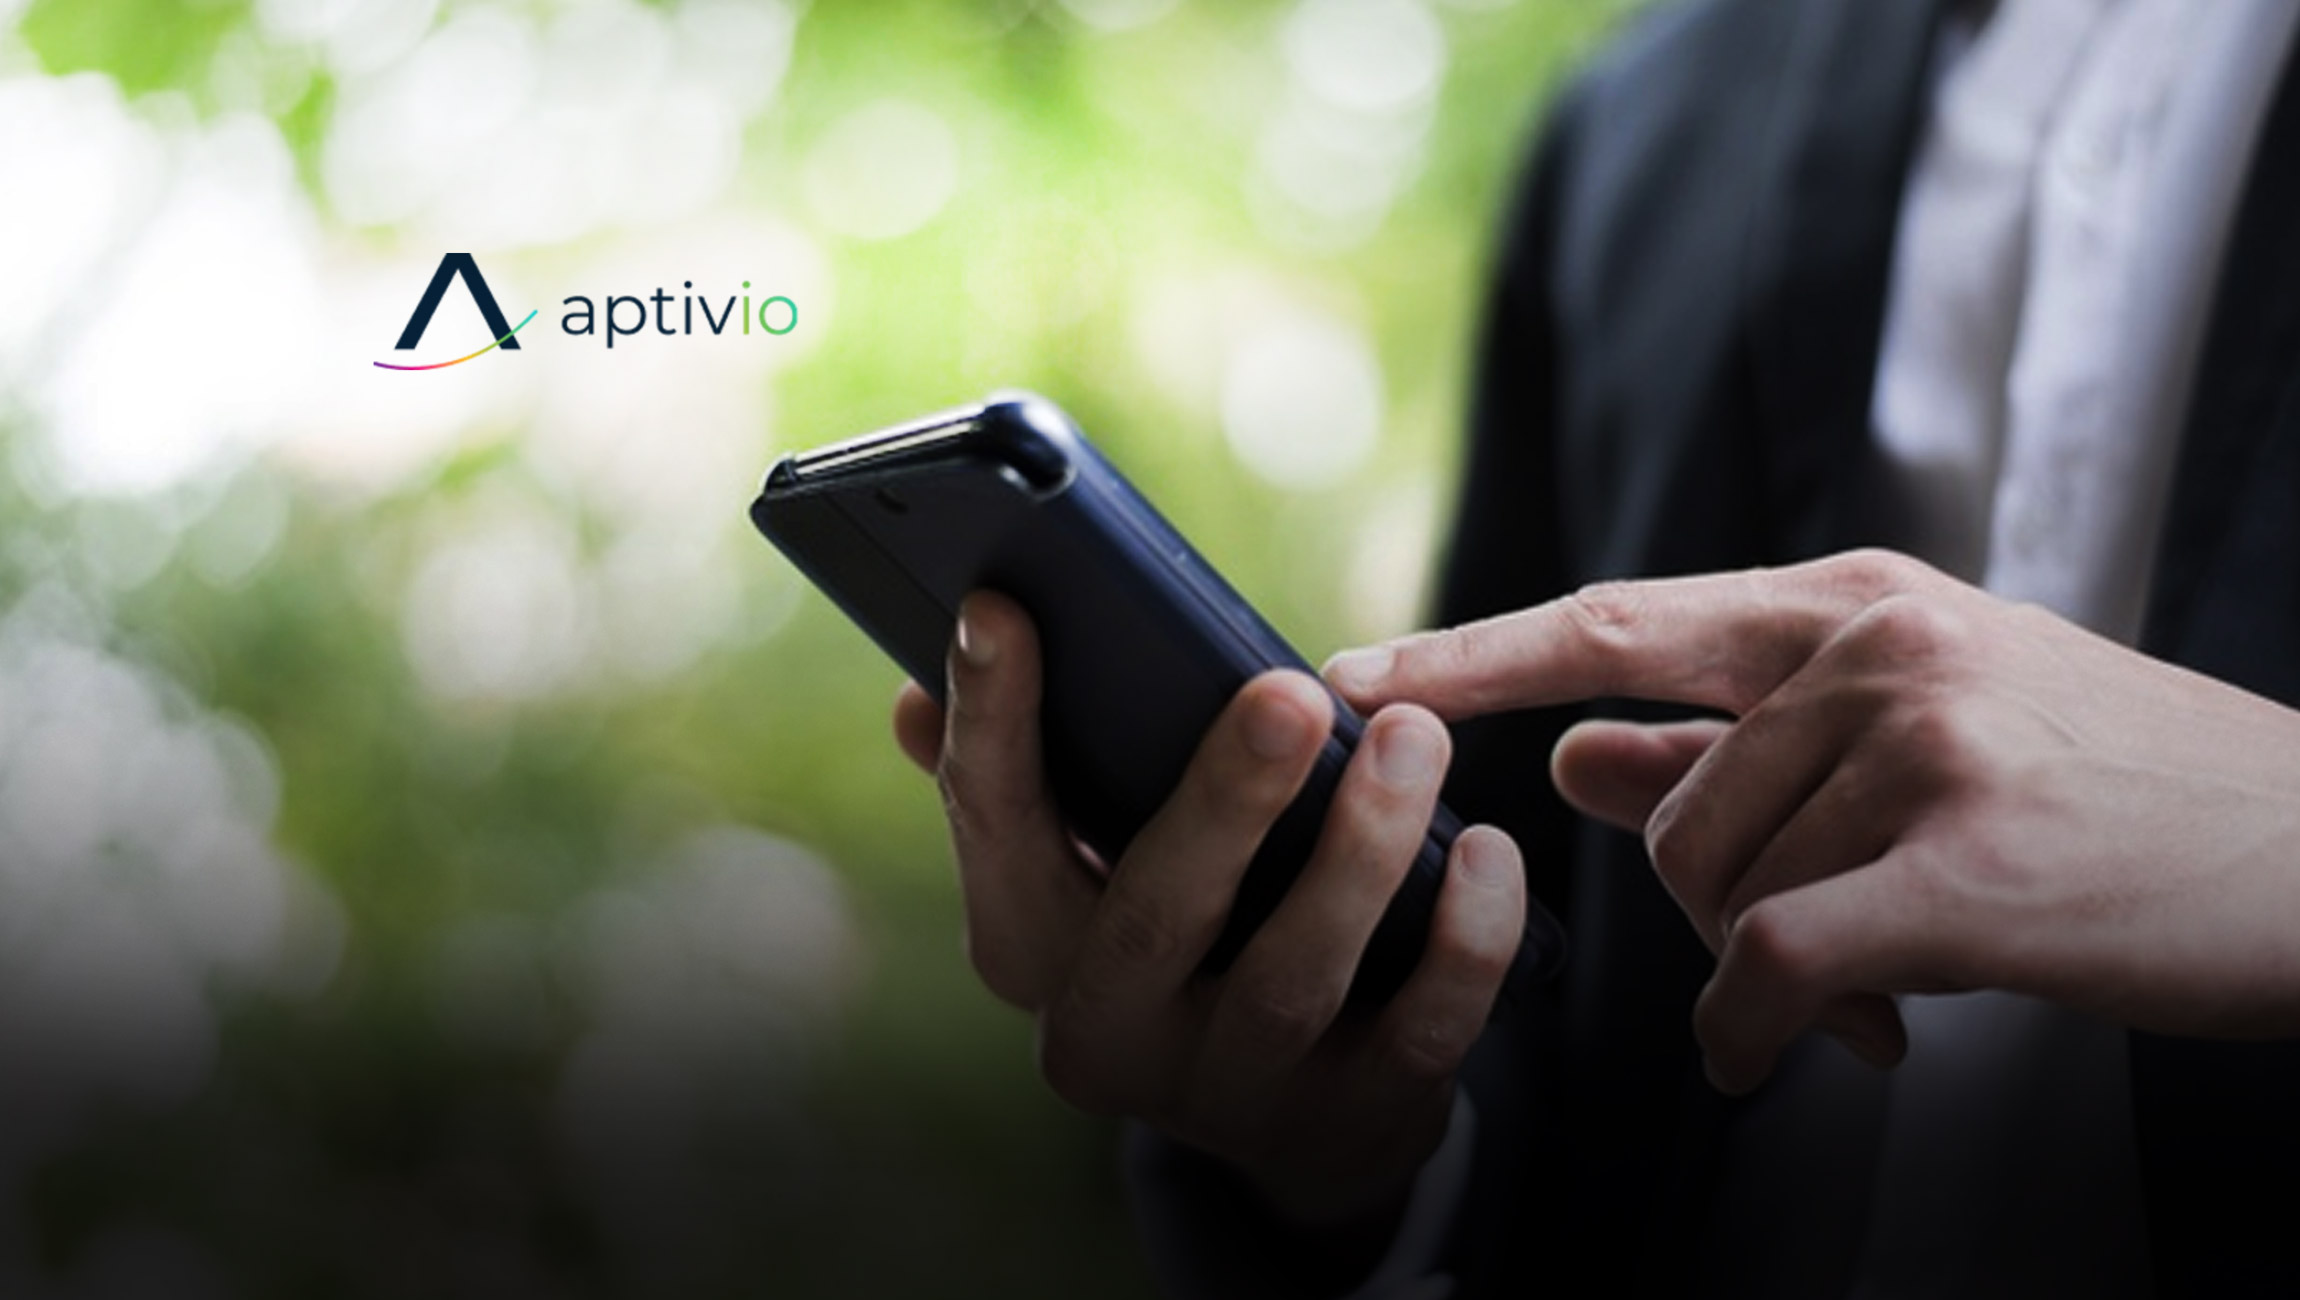 Aptivio Releases the First Augmented Intelligence App for B2B Sales Professionals